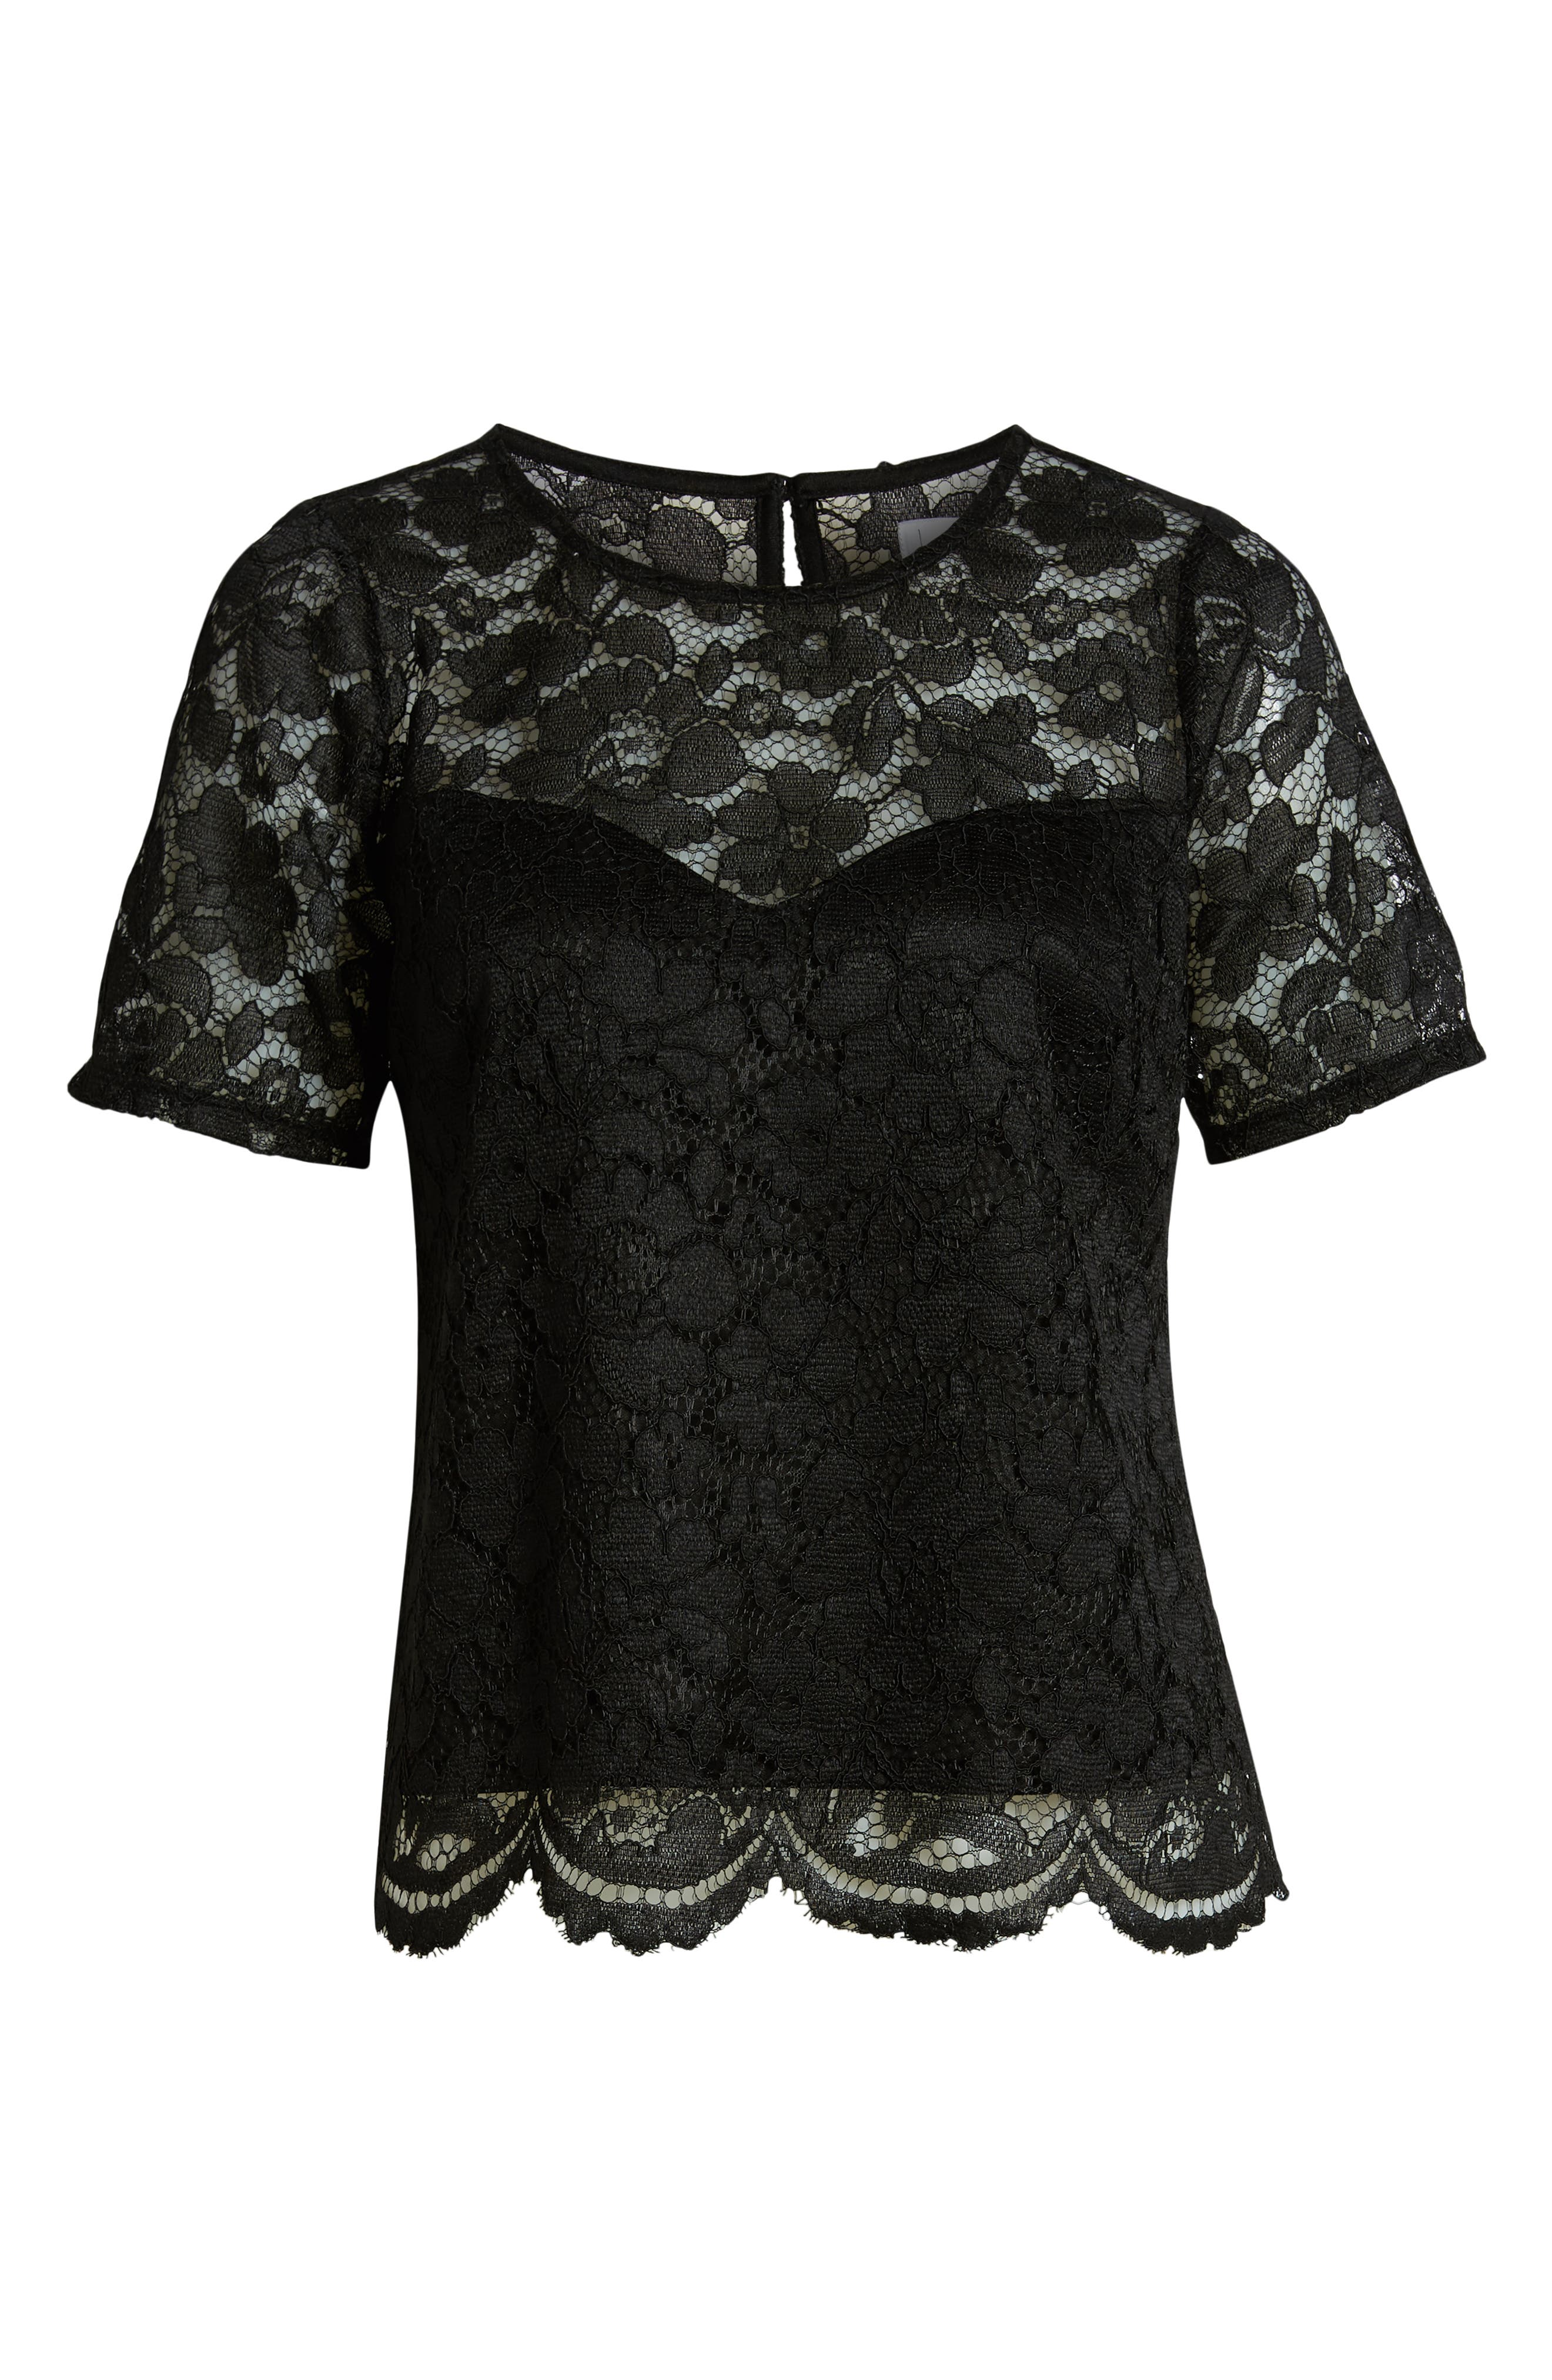 LEITH, Scalloped Lace Tee, Alternate thumbnail 6, color, BLACK